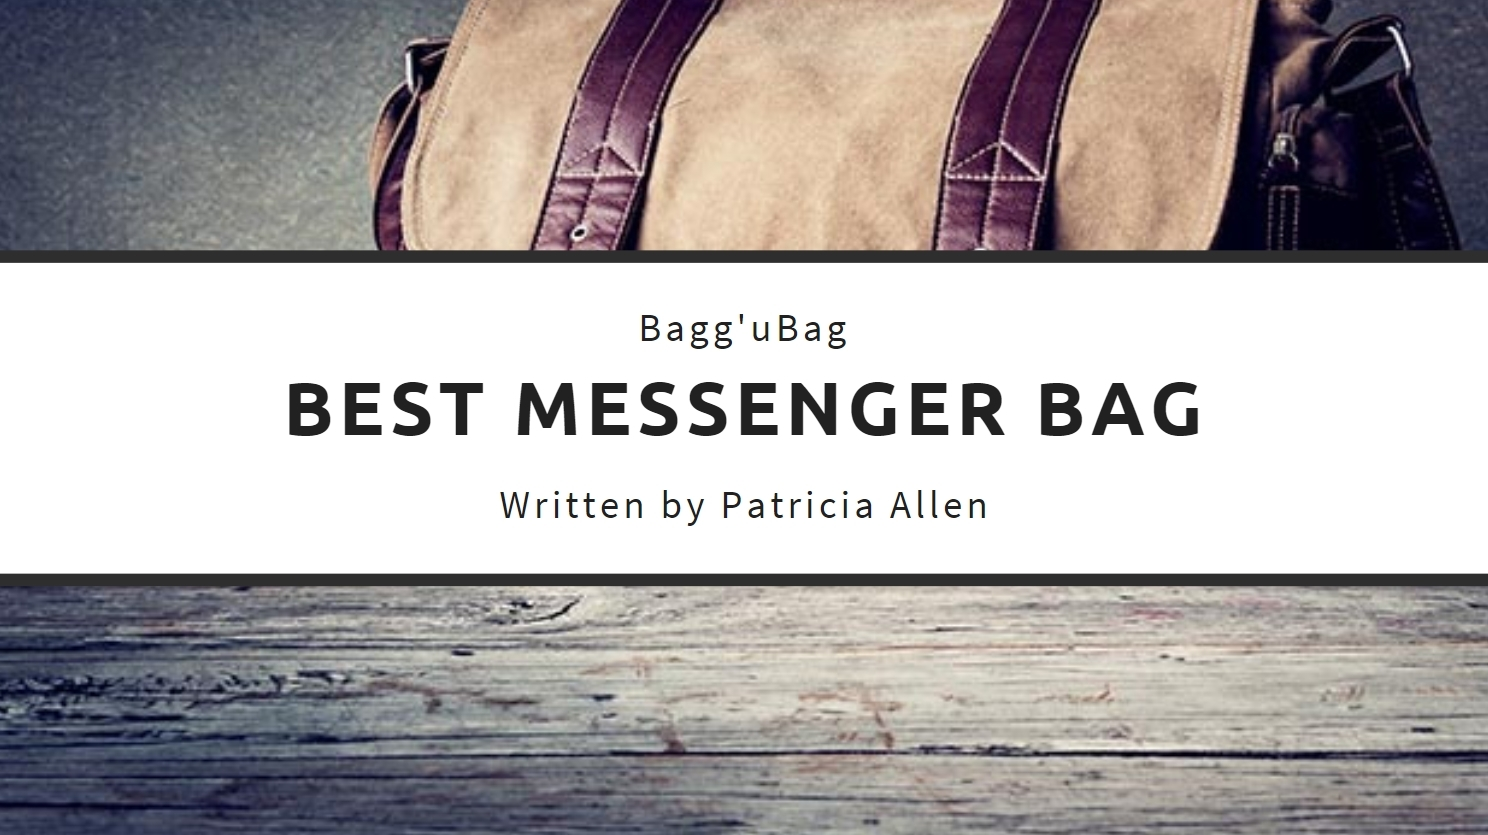 Best Messenger Bag for daily needs in 2020